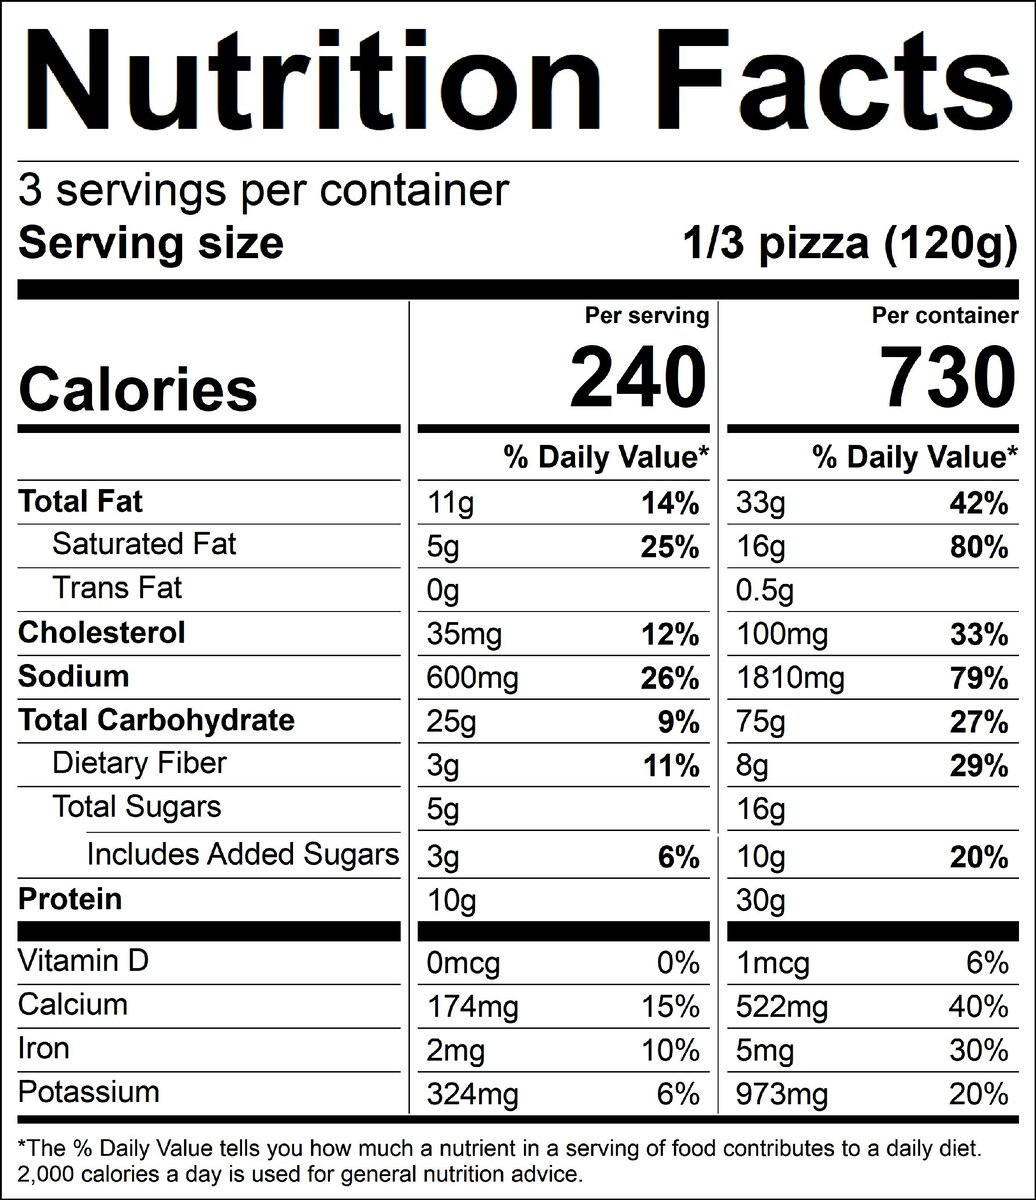 nutrition label; 1 serving 240 cal; 11g fat; 5g saturated fat; 0g trans fat; 35mg cholesterol; 600mg sodium; 25g total carbohydrates; 3g dietary fiber; 5g total sugars includes 3g added sugars; 10g protein; 0mcg vitamin d; 174mg calcium; 2mg iron; 324mg potassium